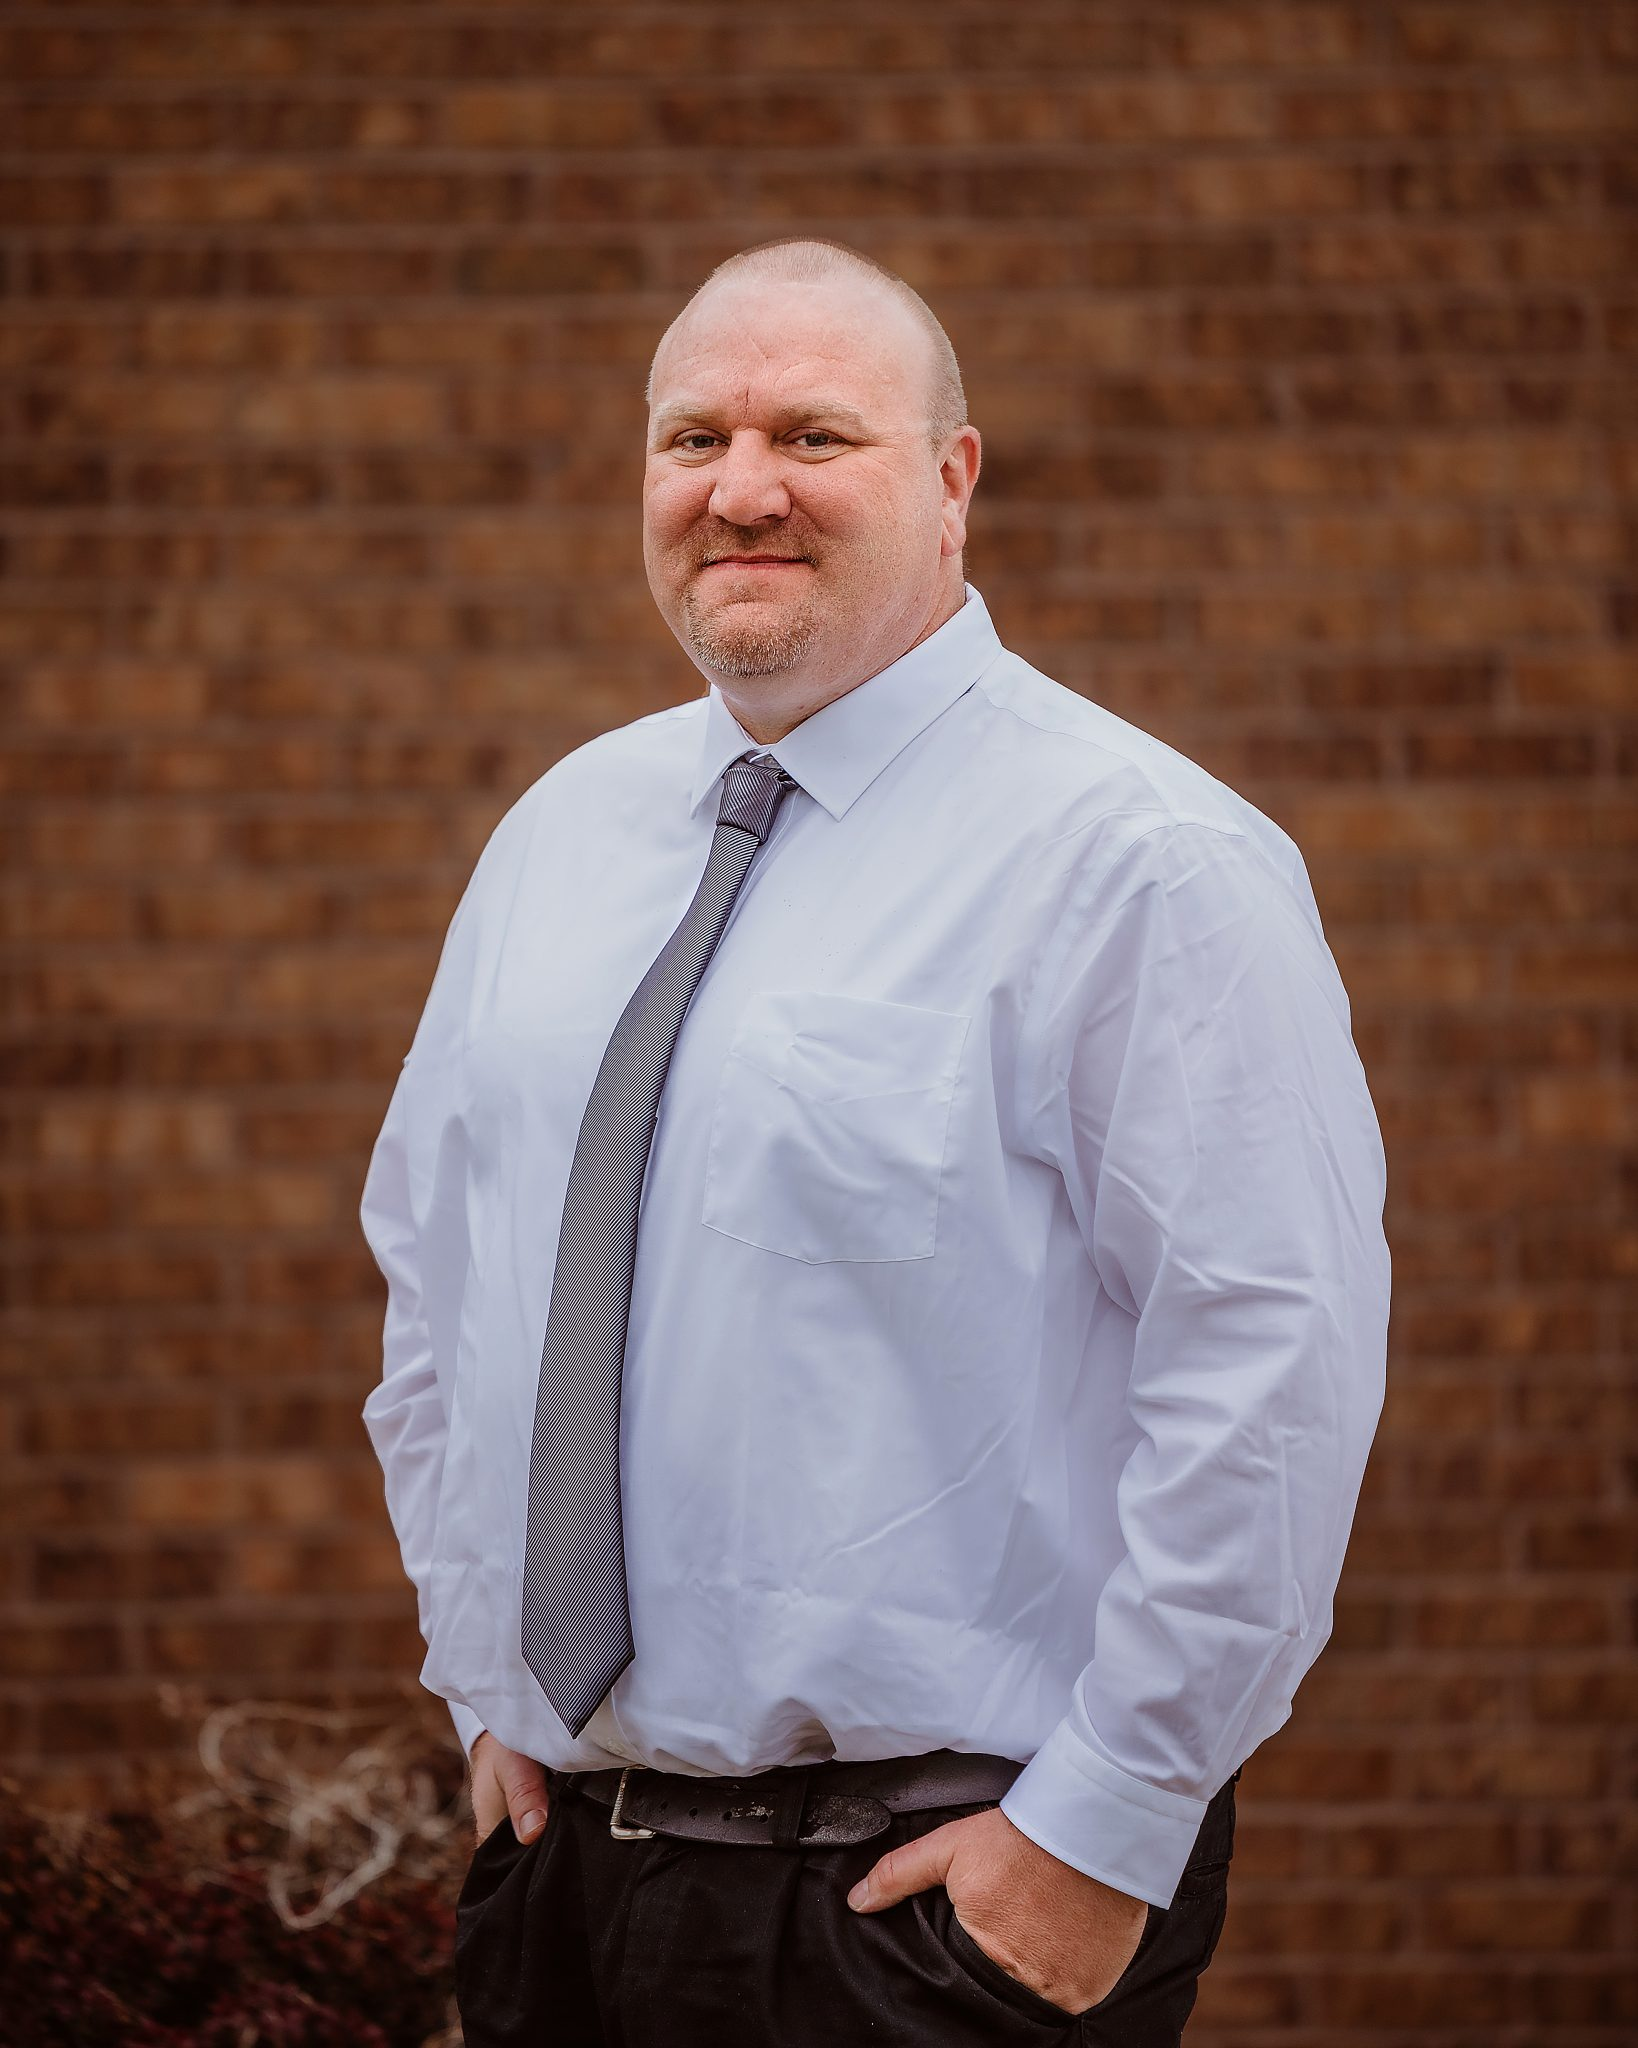 Tony has been working in transportation since 1996.  He grew up in Sioux City, Iowa where he attended Heelan High School. He graduated from the University of South Dakota. Go Yotes!! He is married to Kim Plantenberg and he has a beautiful daughter Korryn and stepdaughter Emily. He currently lives in Papillion, NE.